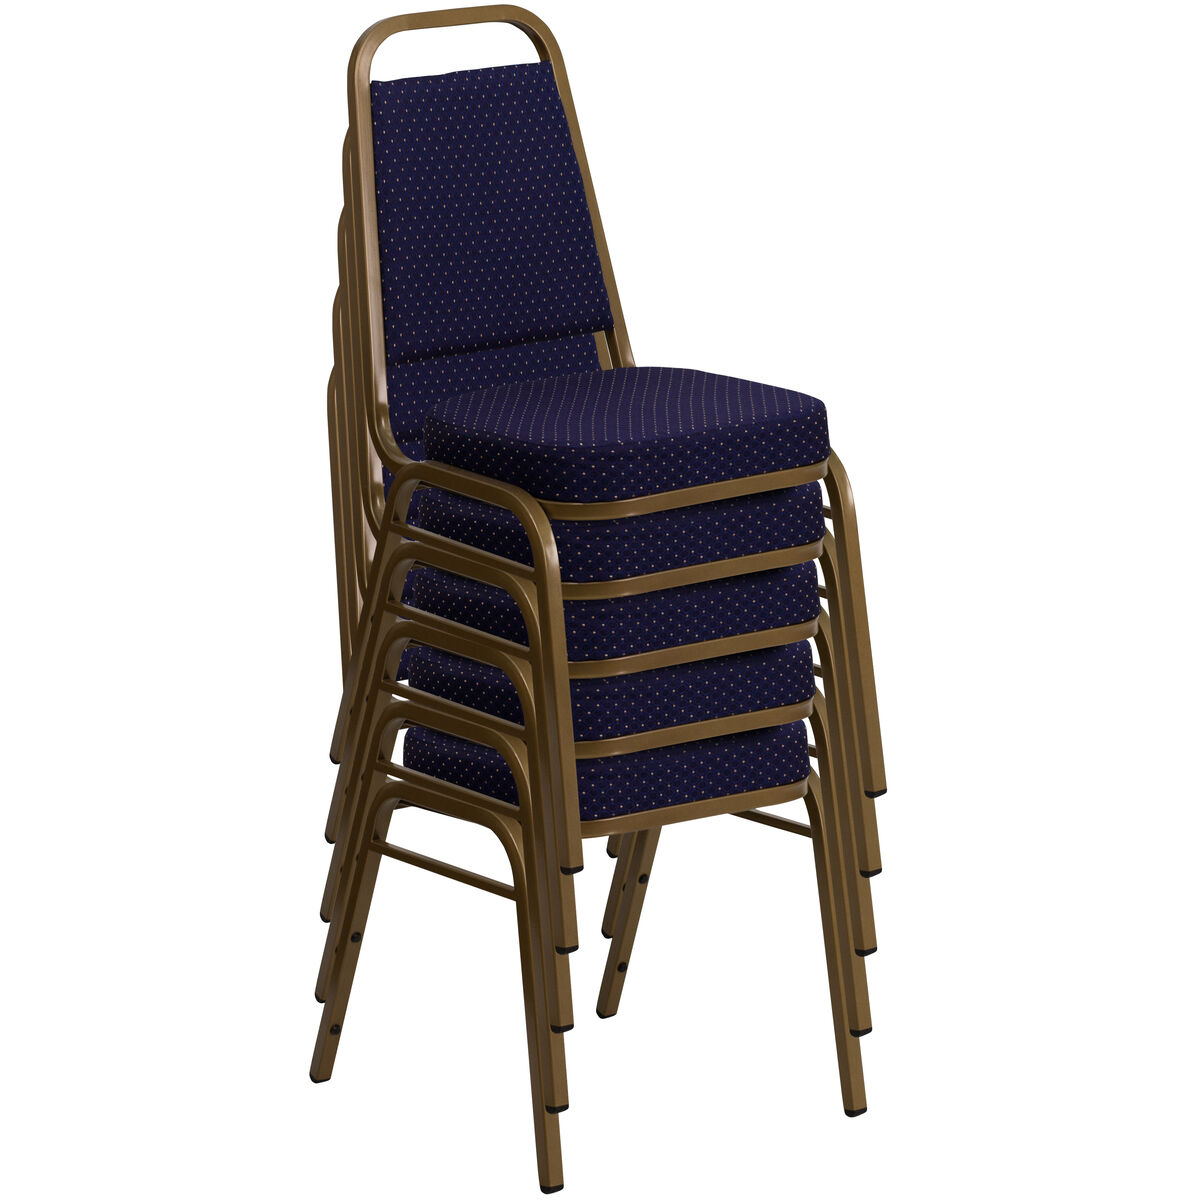 Navy Fabric Banquet Chair Fd Bhf 1 Allgold 0849 Nvy Gg